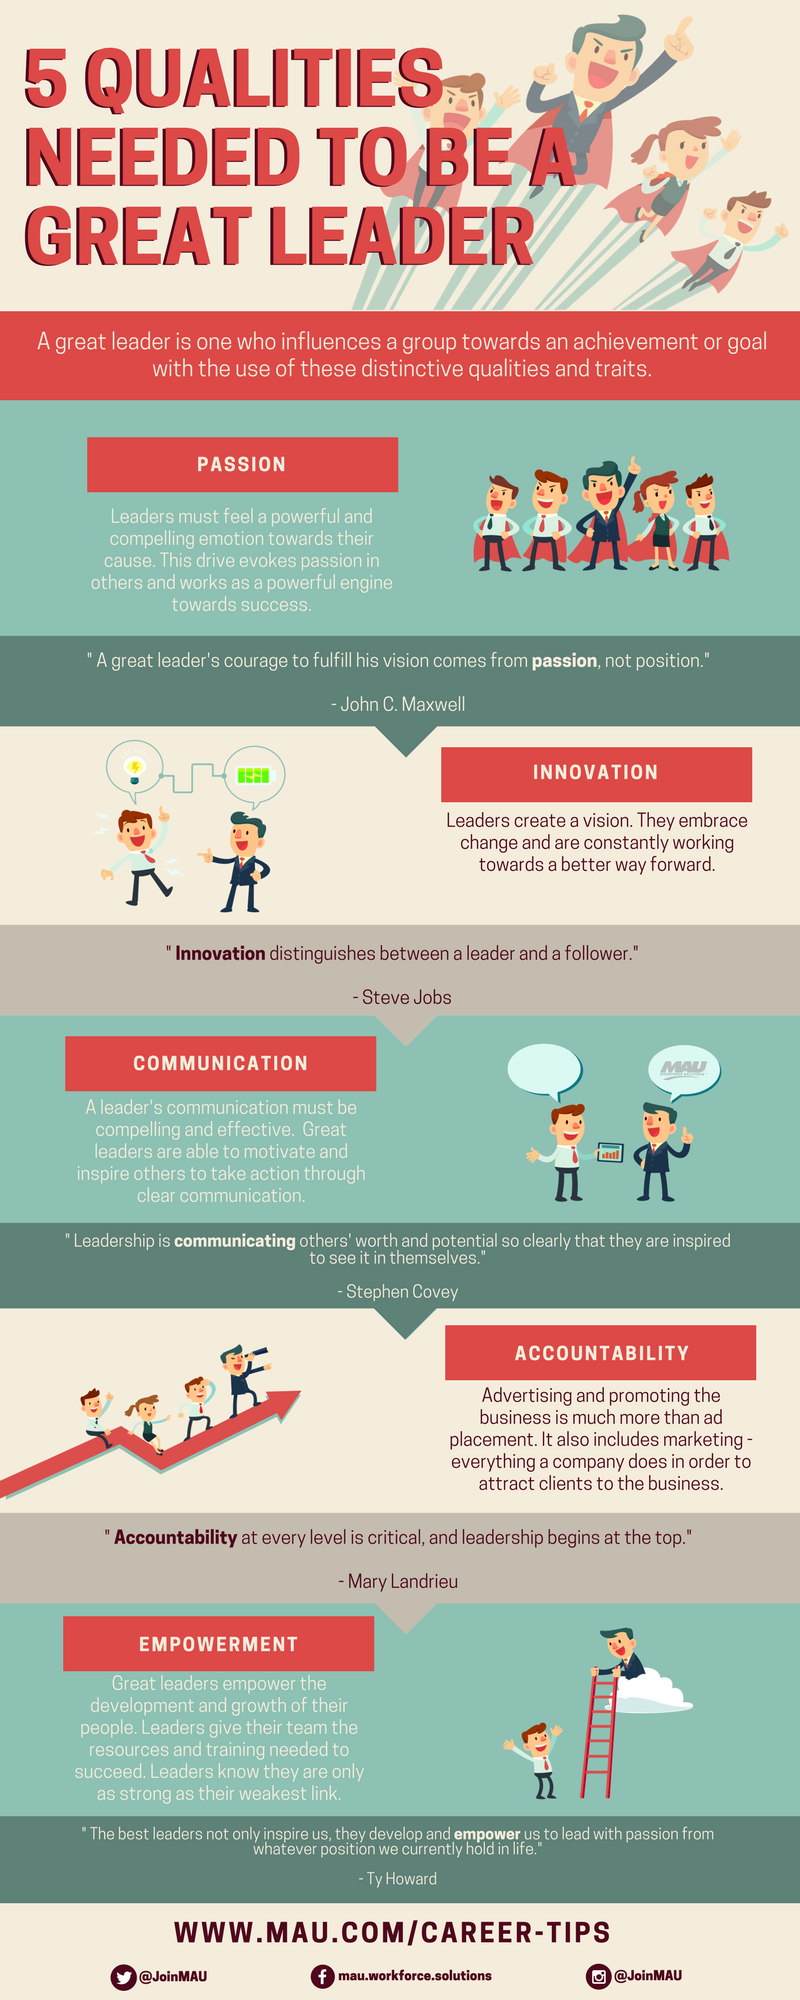 5 qualities needed to be a great leader in today's workforce-1.png